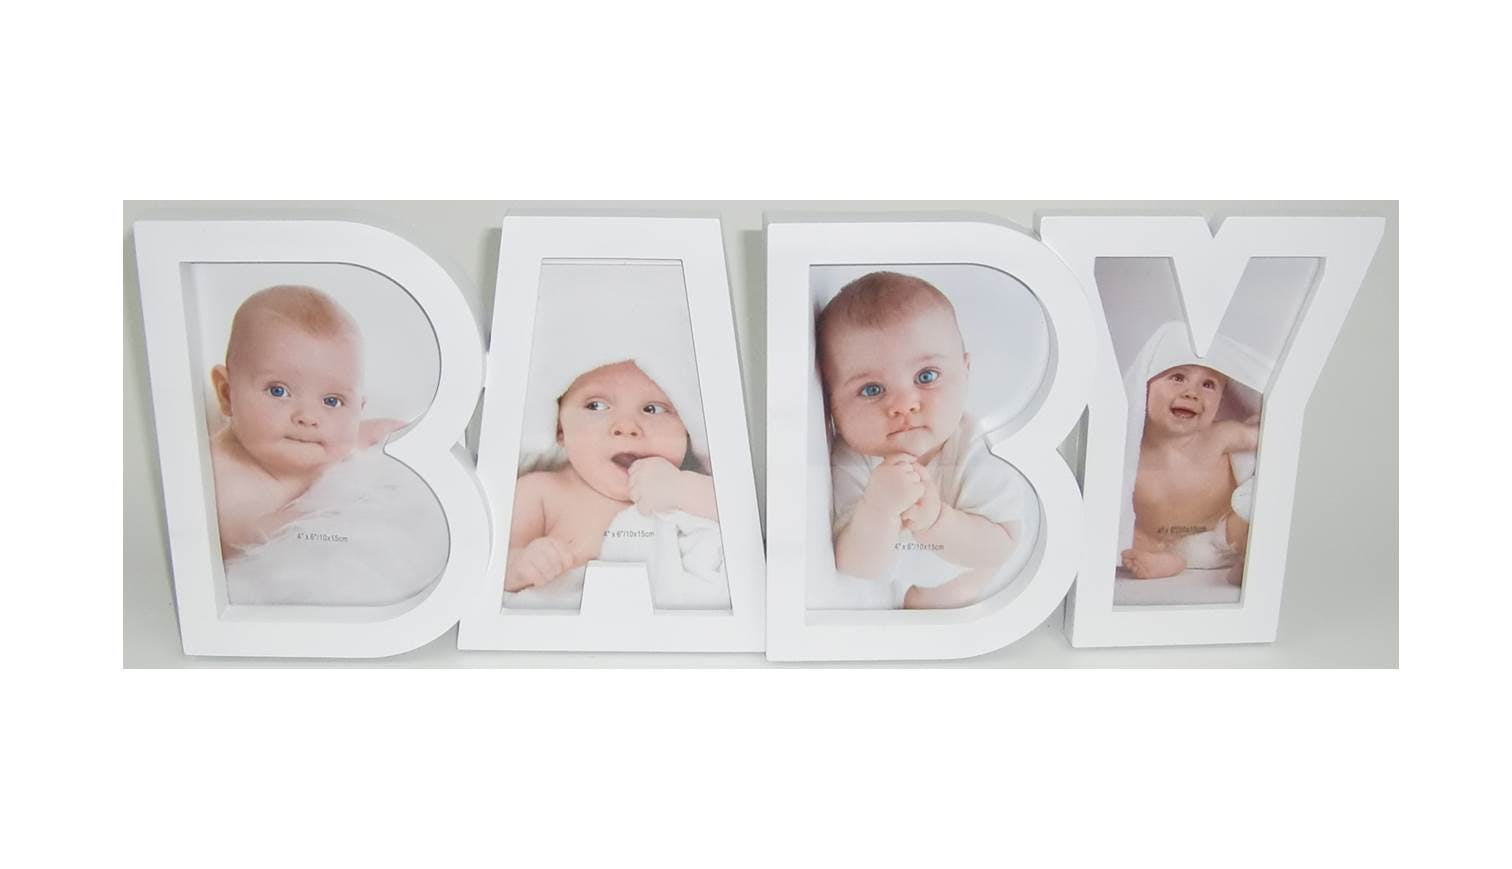 Friends EE61335W Photo Frame - Baby White | Harvey Norman Singapore